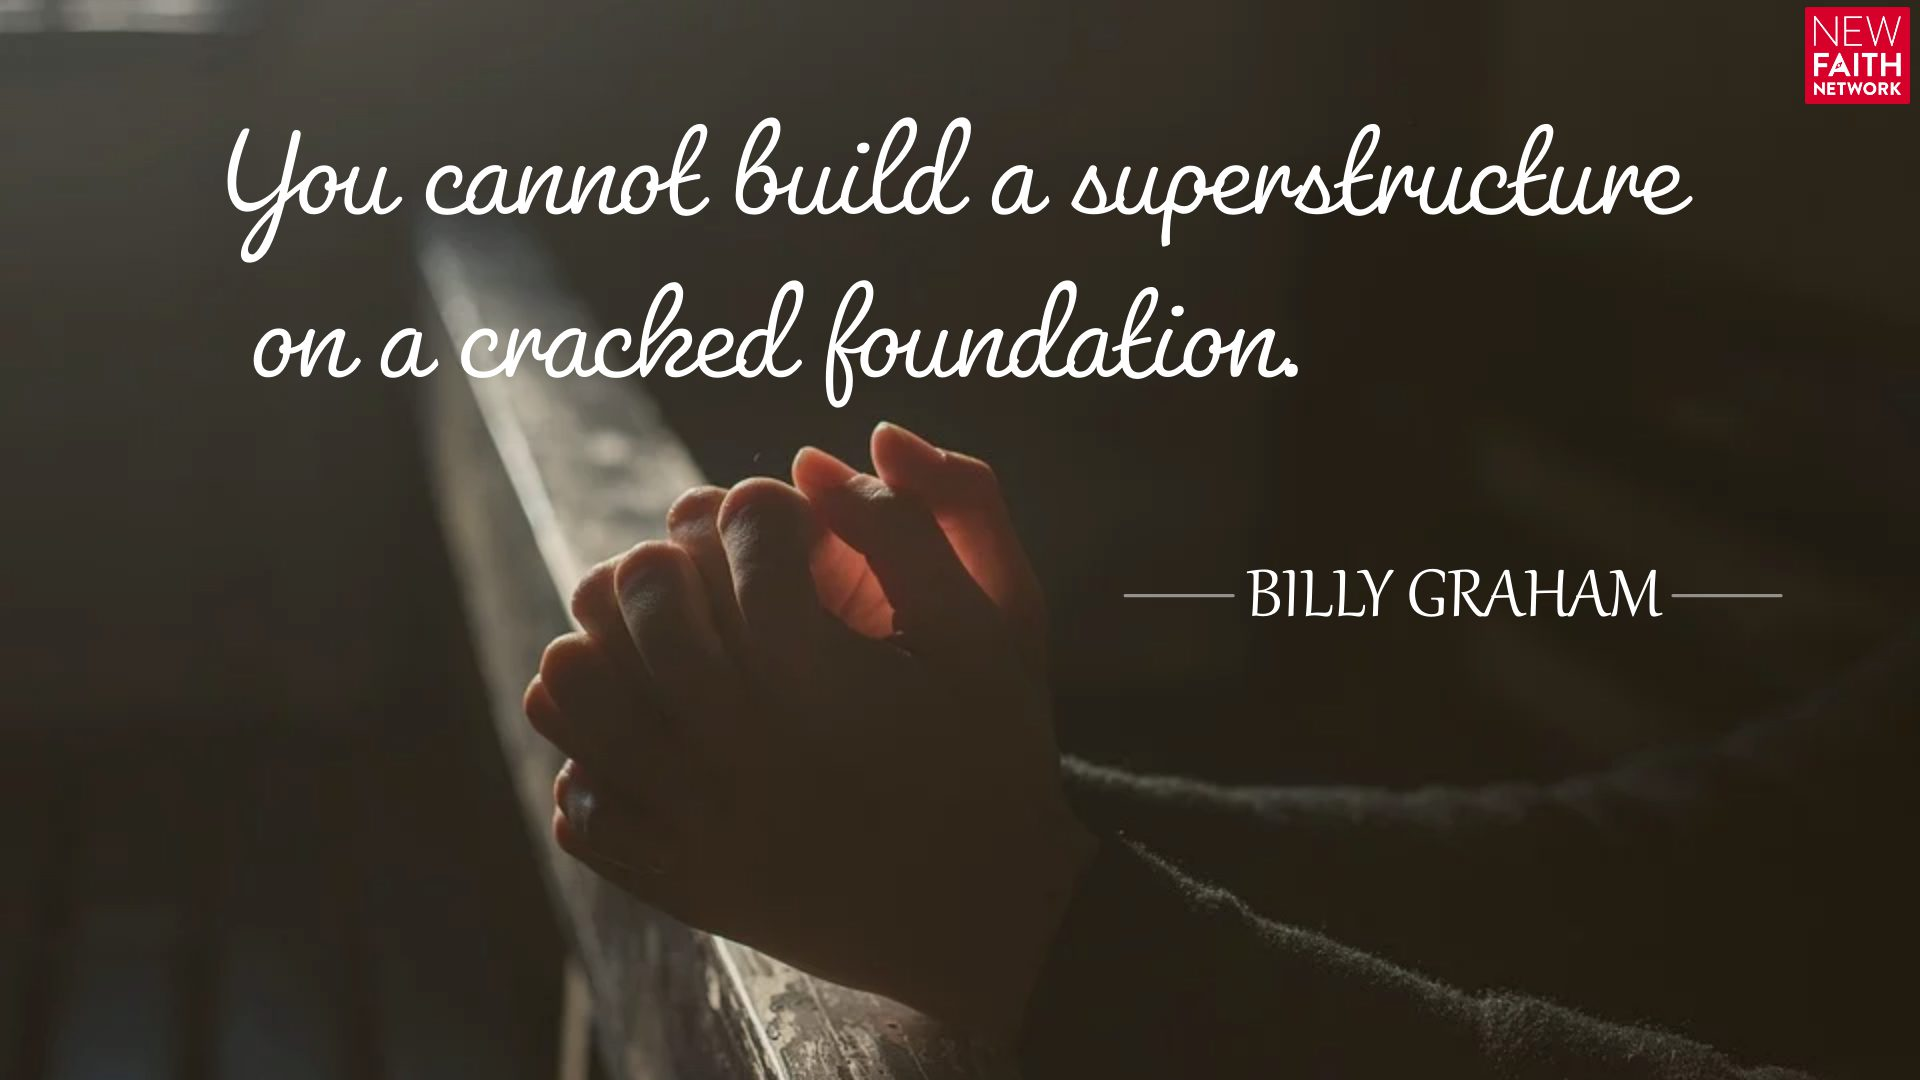 You cannot build a superstructure on a cracked foundation.